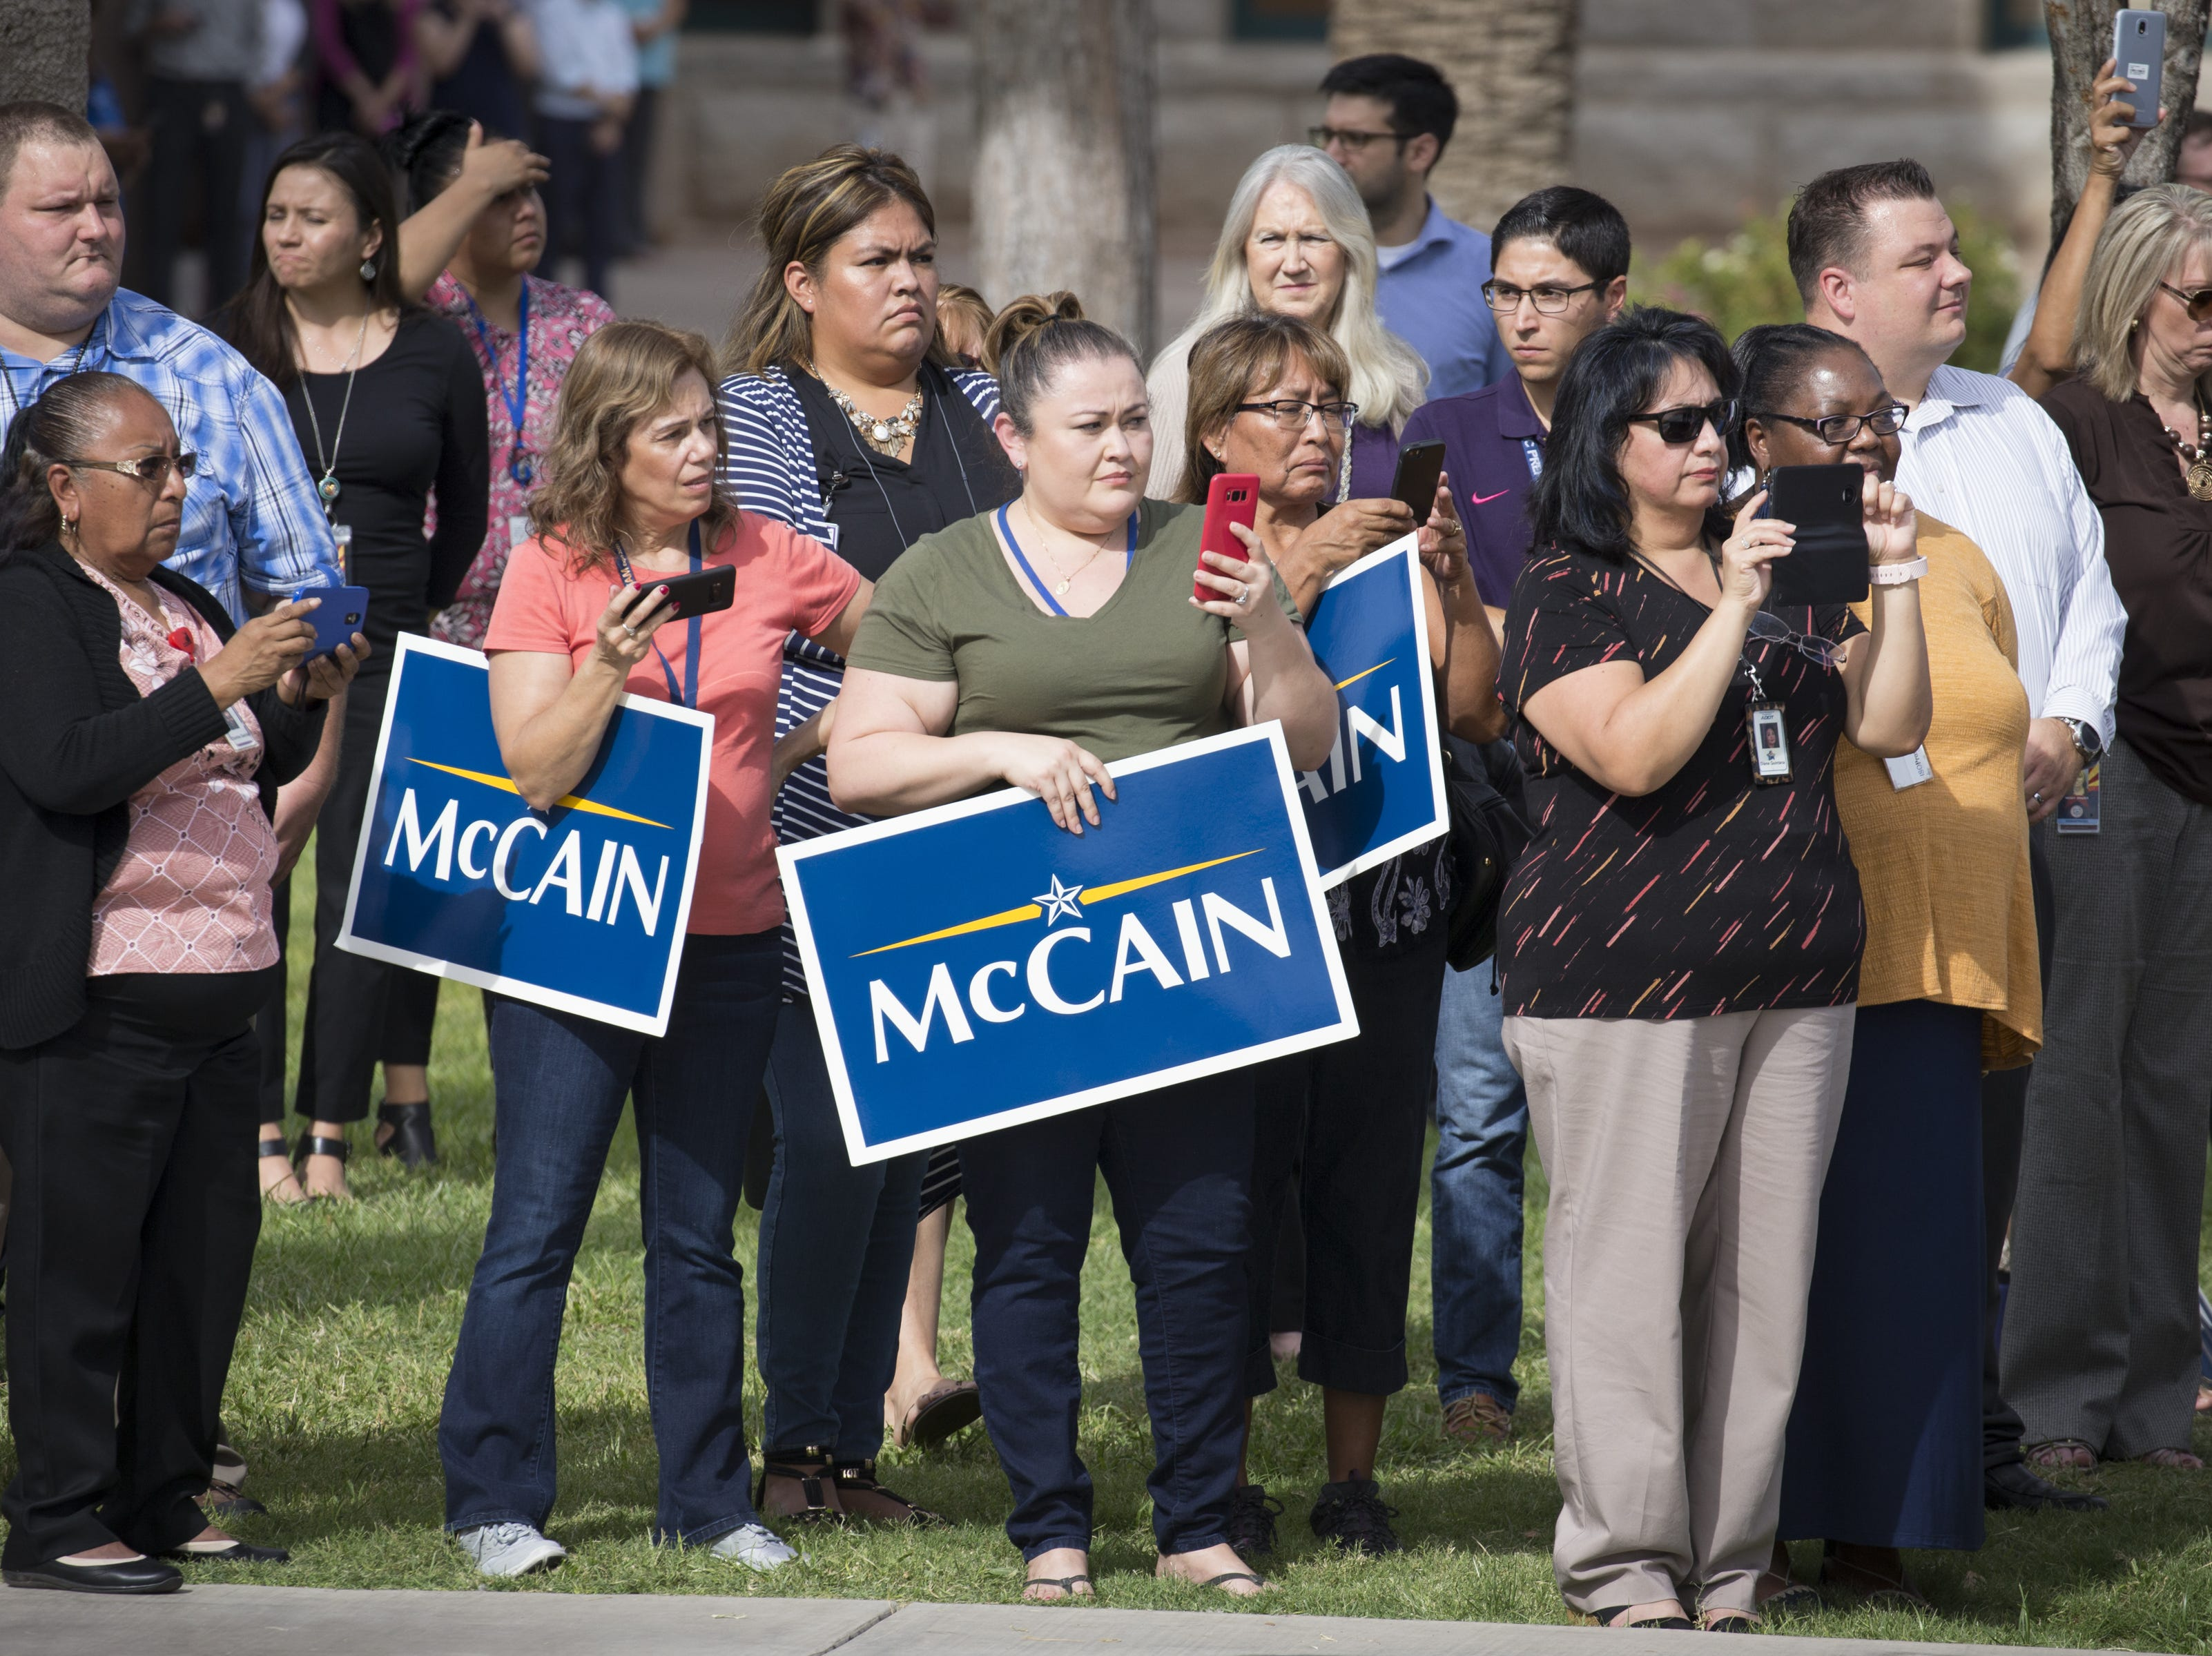 McCain supporters watch the casket carrying the body of John McCain leave the Arizona State Capitol, Aug. 30, 2018, for the memorial service at North Phoenix Baptist Church, Phoenix, Arizona.